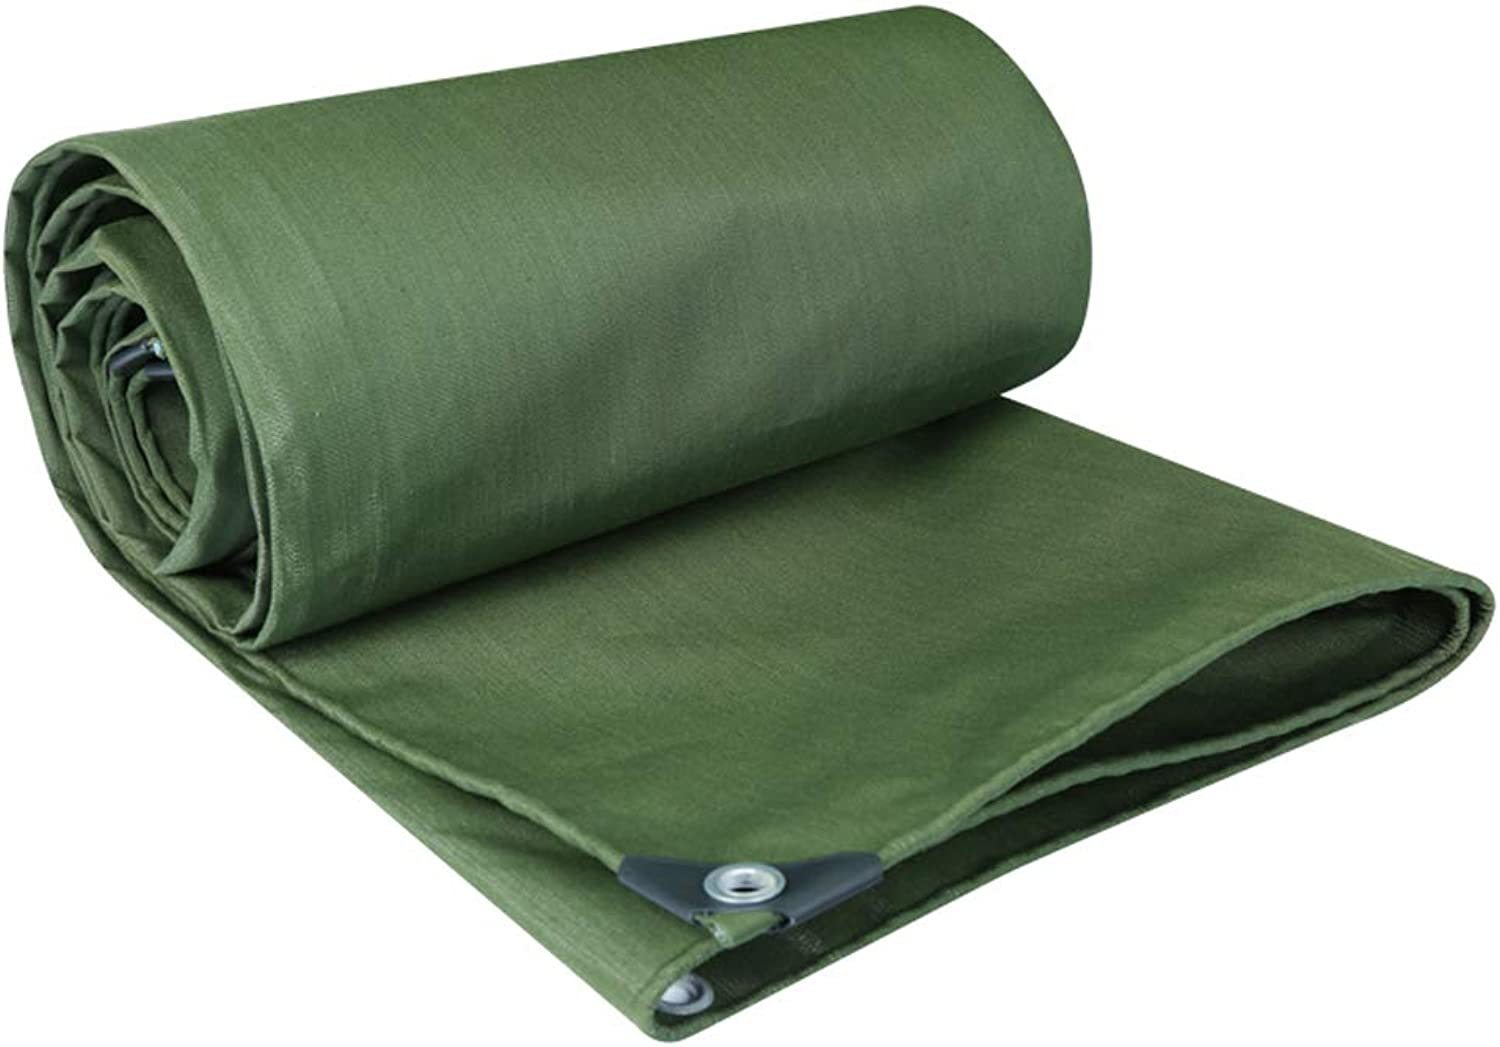 RMJAI Tarp Waterproof Heavy Duty,Tarpaulin Waterproof,Oxford Cloth Tent, Army Green Flame Resistant Poly Tarpaulin UV Resistant(0.75mm) (Size   5x5M)